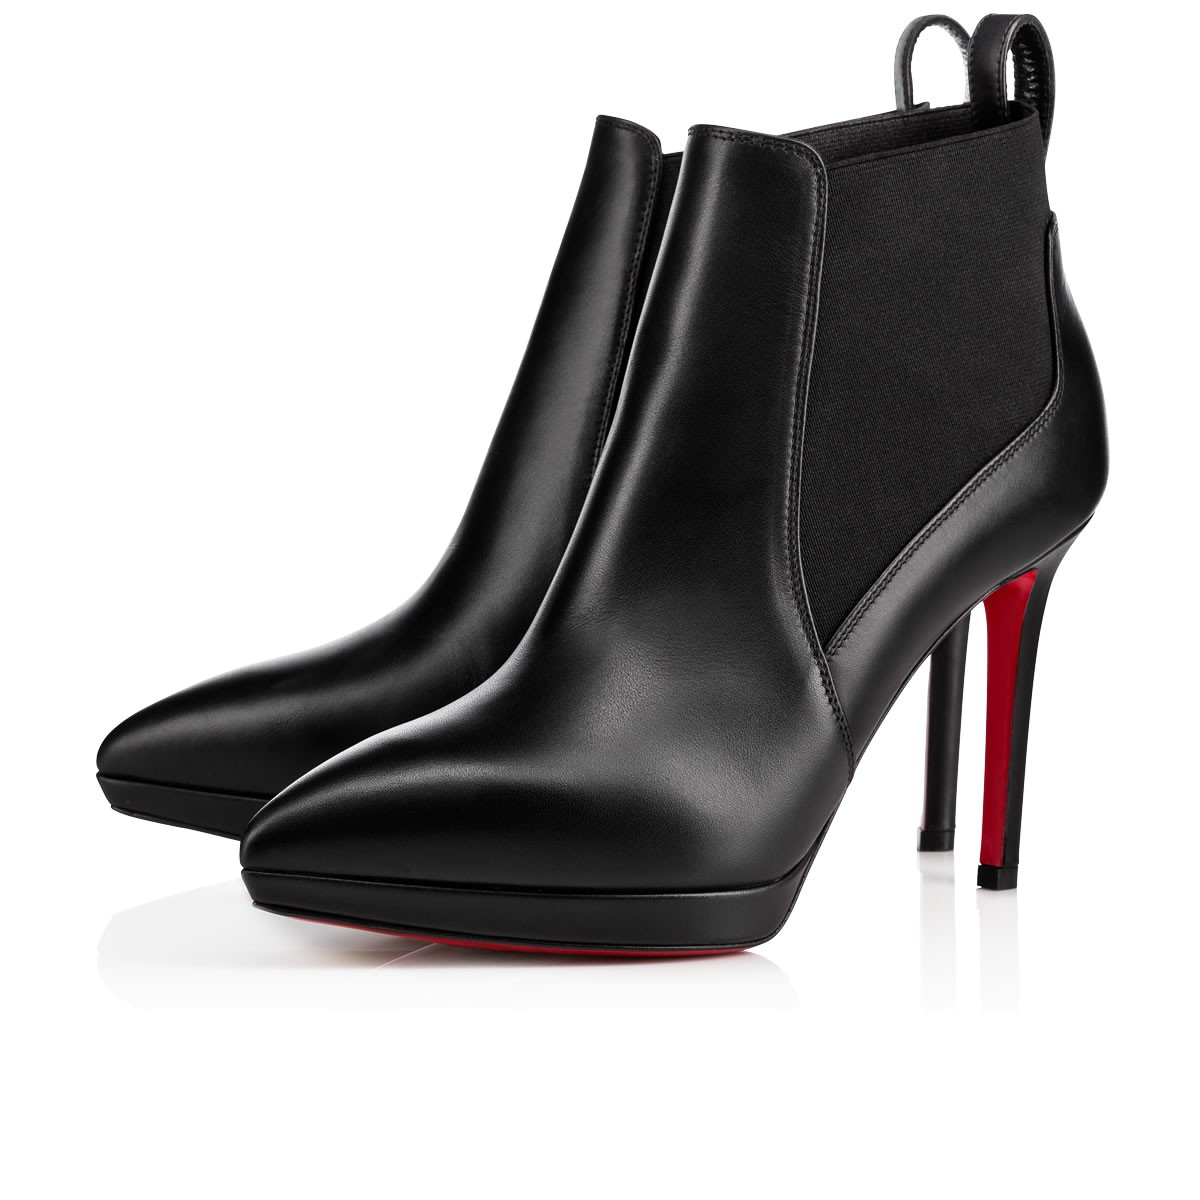 classic style various styles stable quality Crochinetta 100 Black Leather - Women Shoes - Christian Louboutin